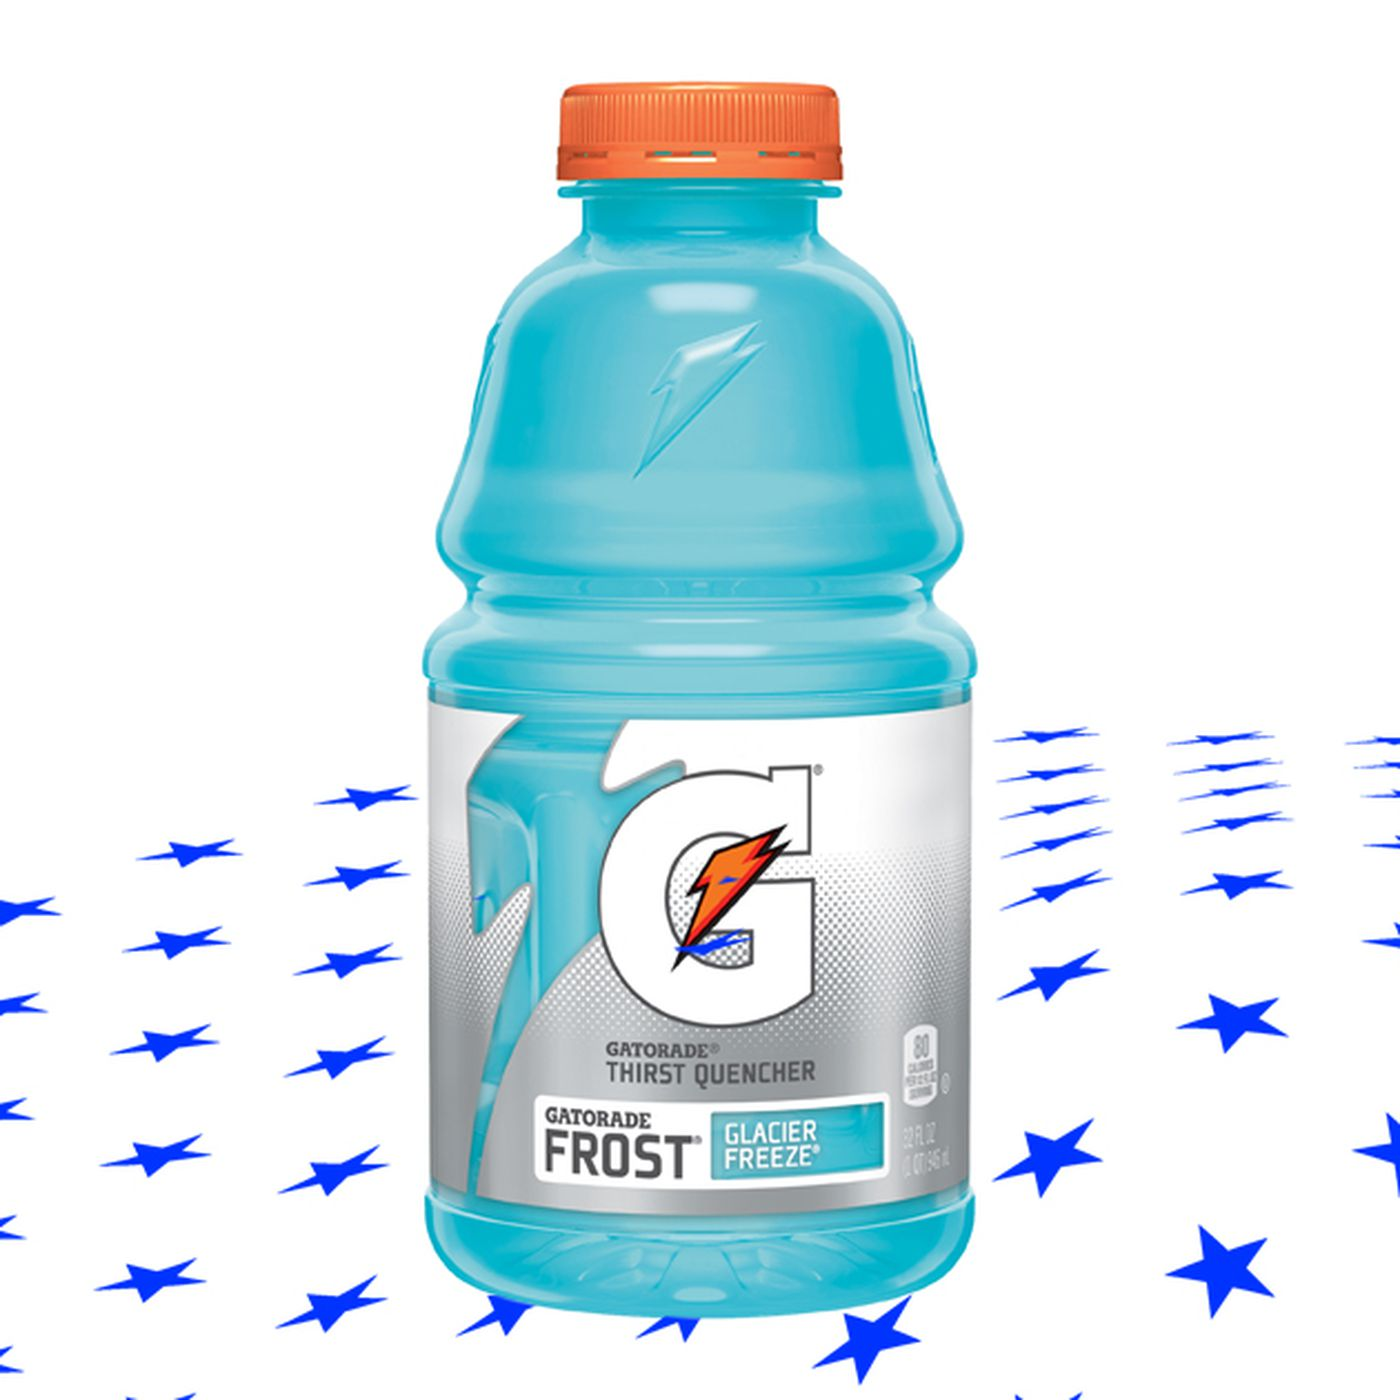 3255b90cdb Light blue  Glacier Freeze  is the best Gatorade flavor ever ...